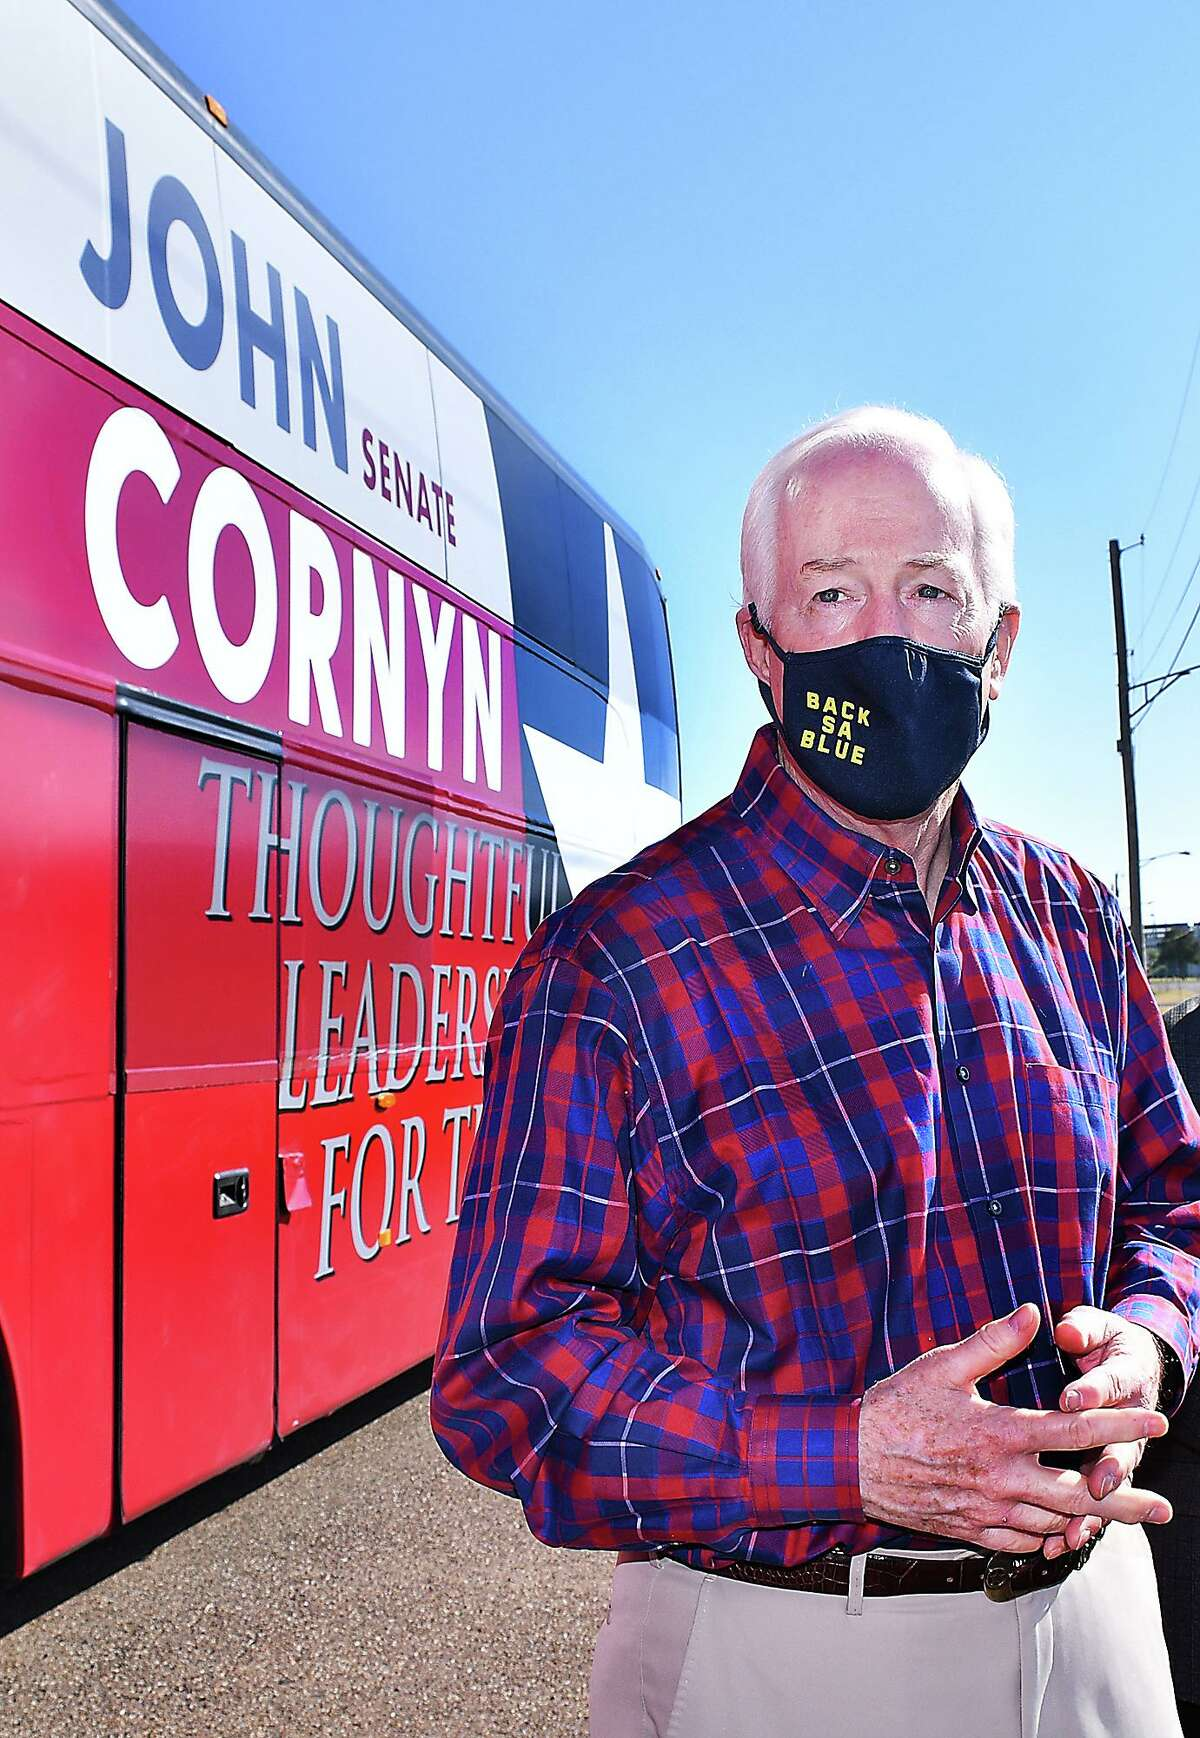 Senator John Cornyn stopped in Laredo on Monday, Nov. 2 for a rally to get out the vote as Cornyn seeks re-election.